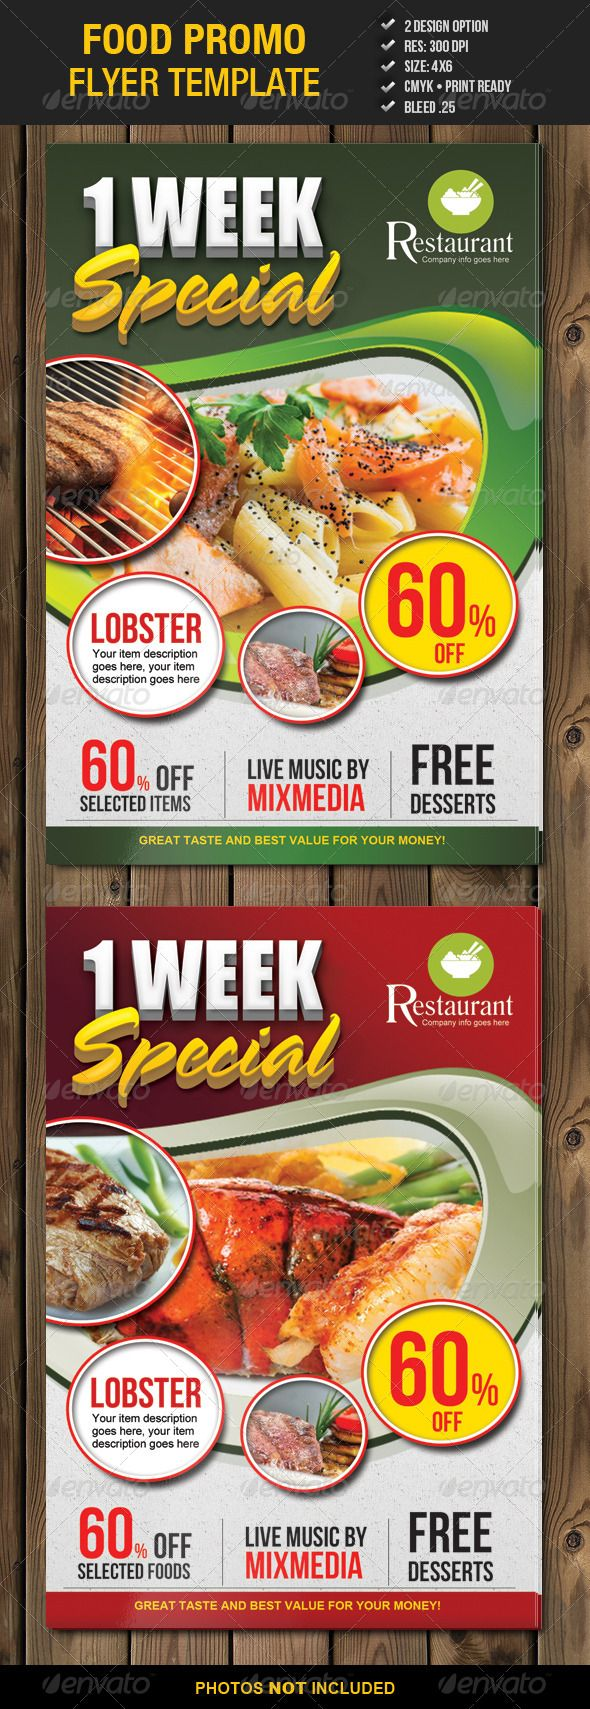 Food Promo Flyer Template 2 – Food Flyer Template